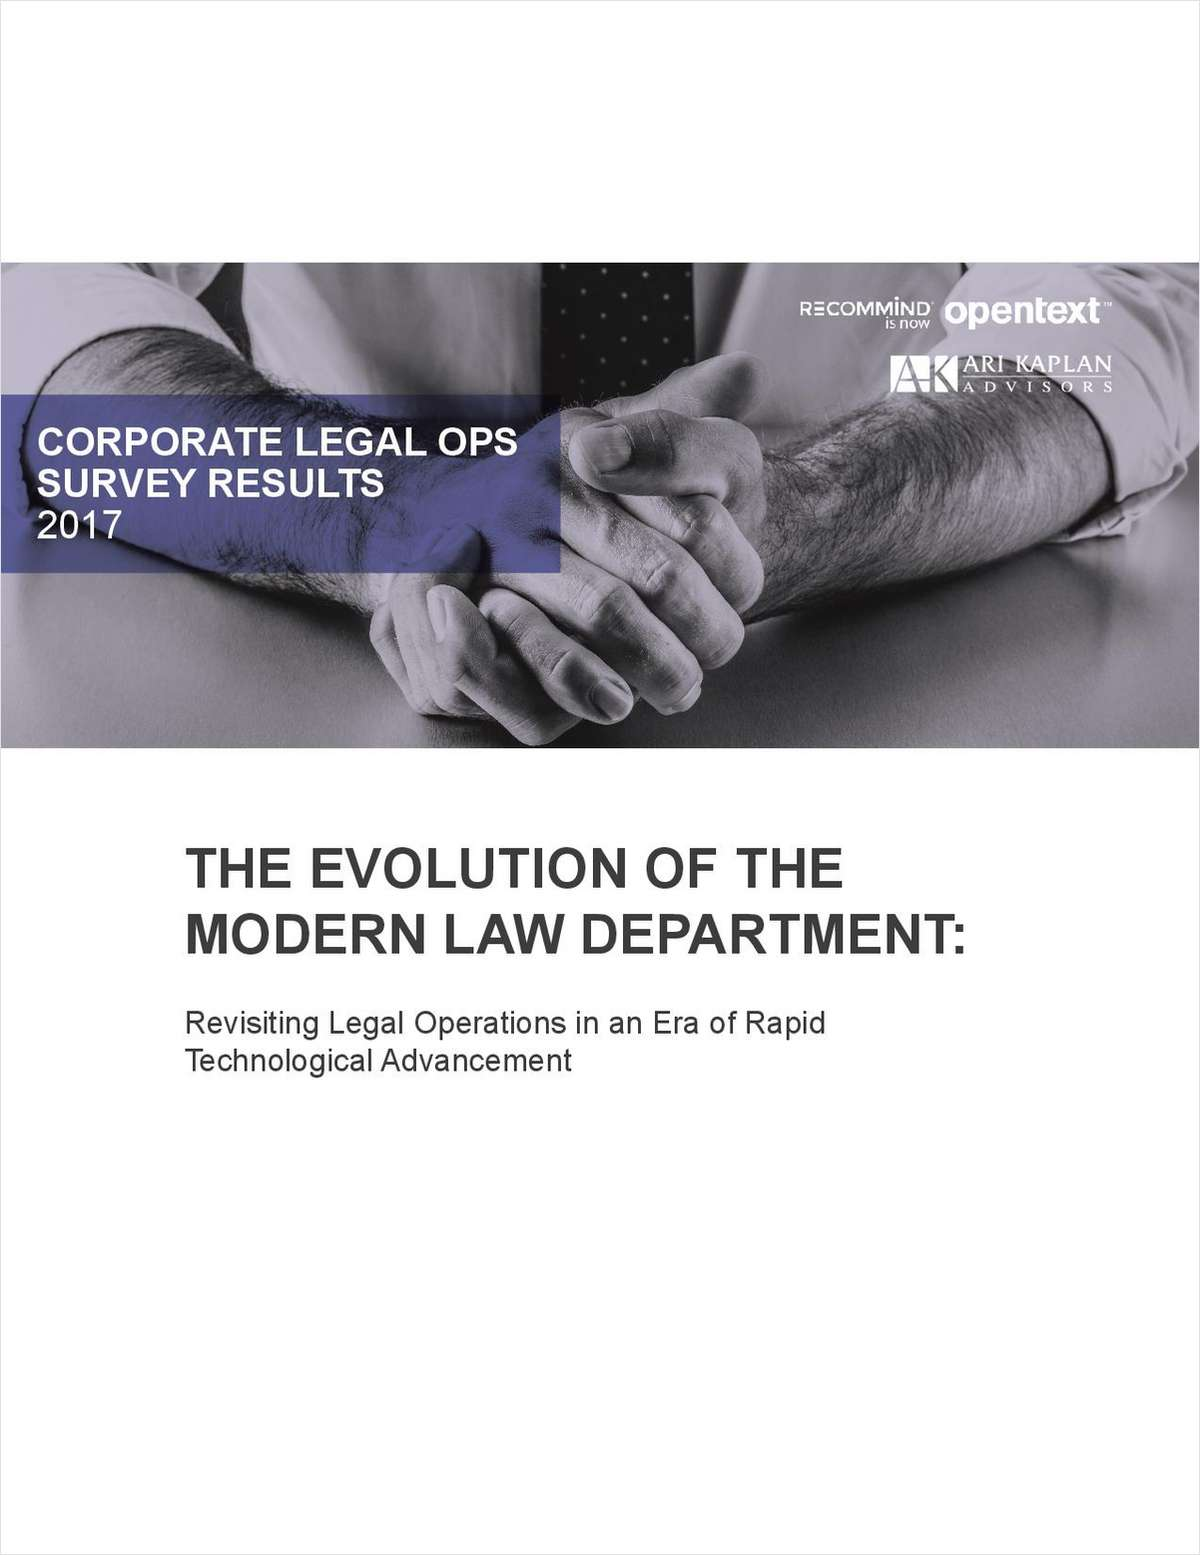 The Evolution of the Modern Law Department